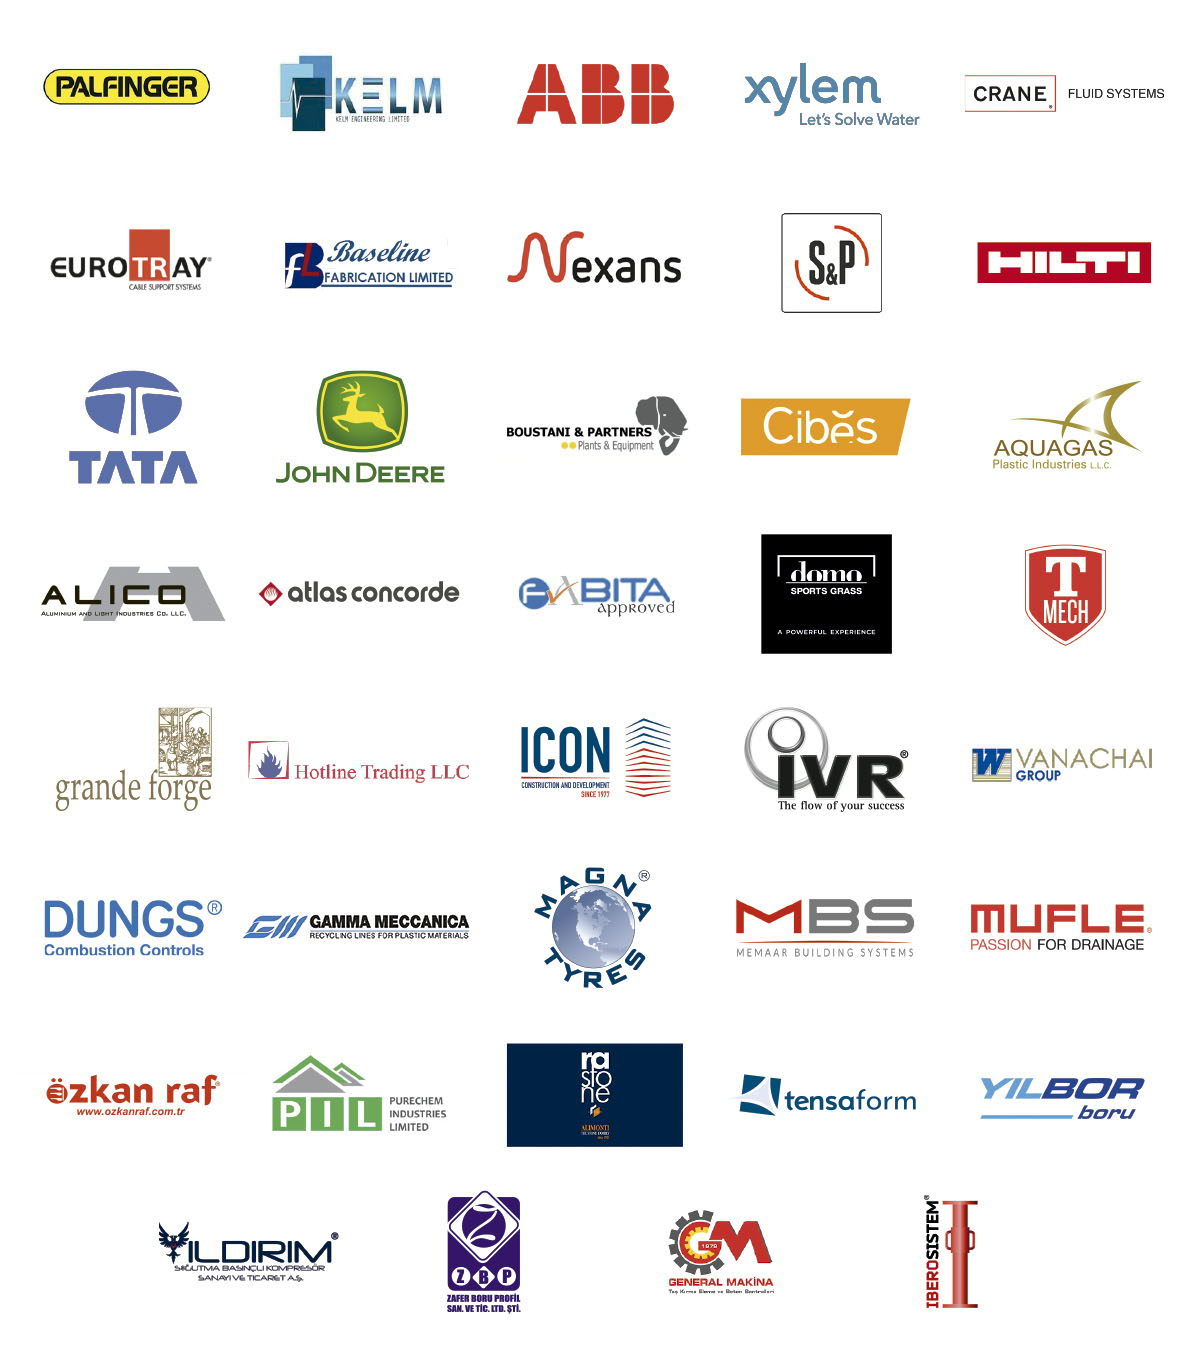 Some of the confirmed exhibitors at The Big 5 Construct Nigeria